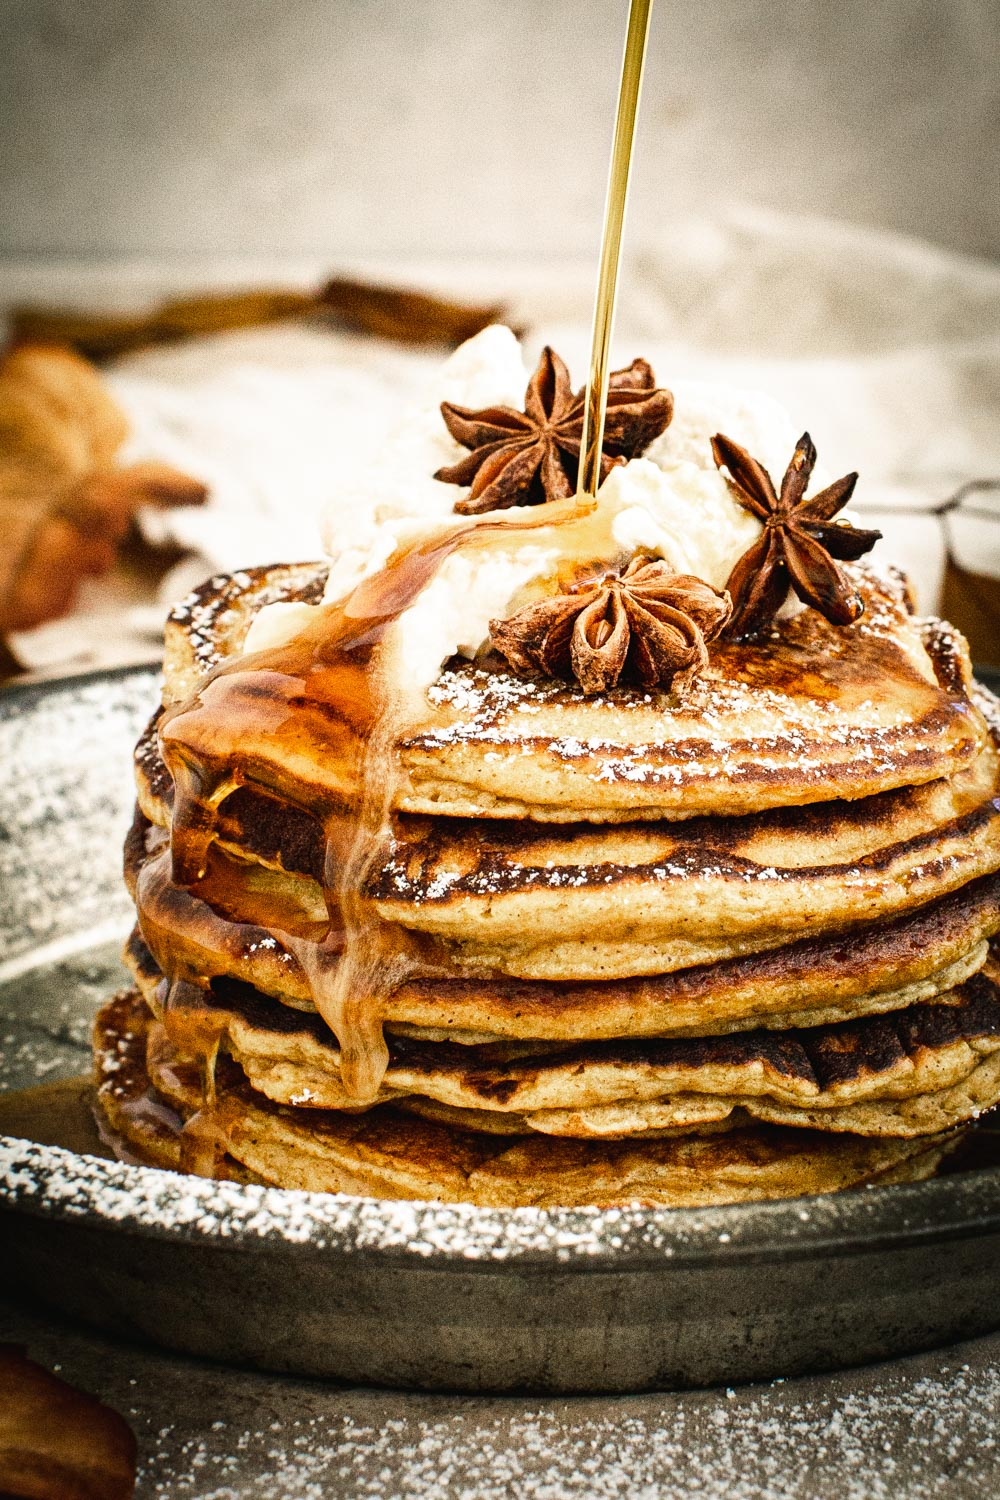 Drizzling syrup on top of pumpkin pancakes with whipped cream and powdered sugar.